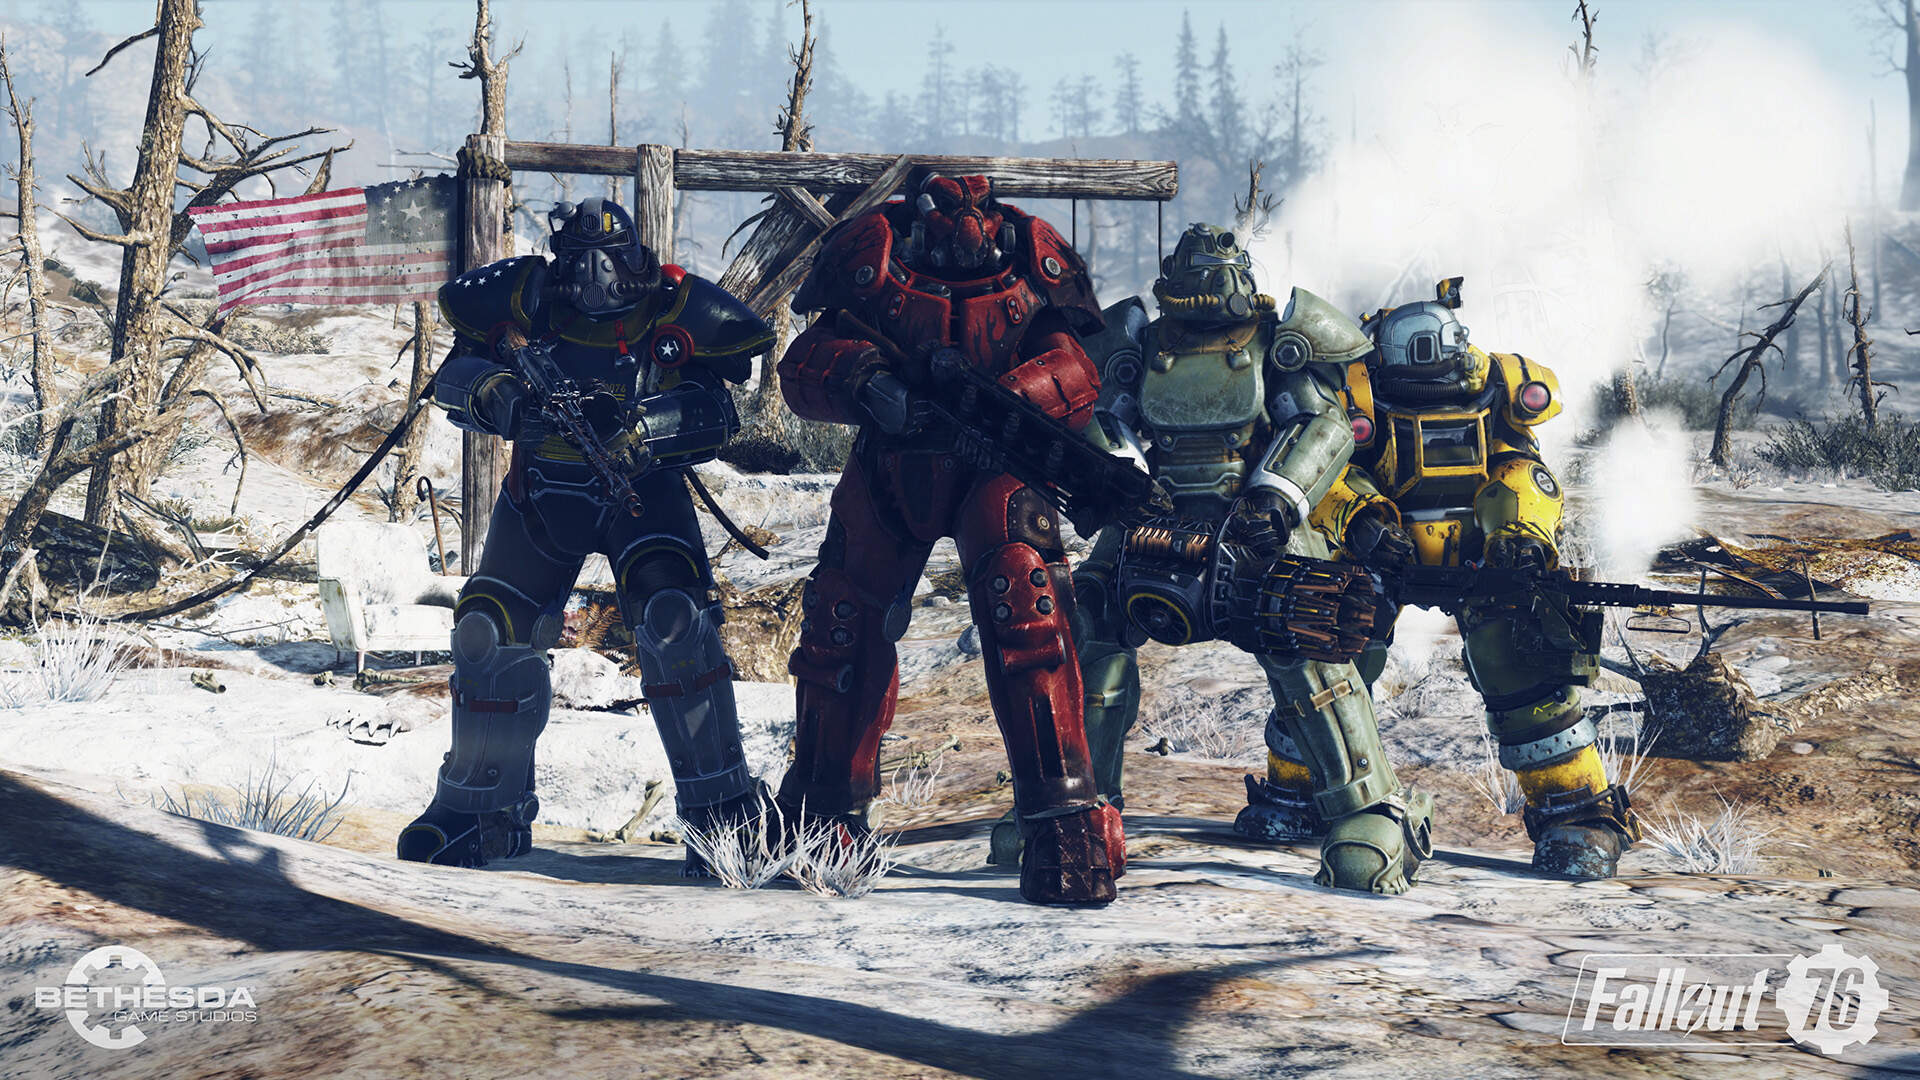 Fallout 76 PC Requirements - Minimum, Recommended PC Specs